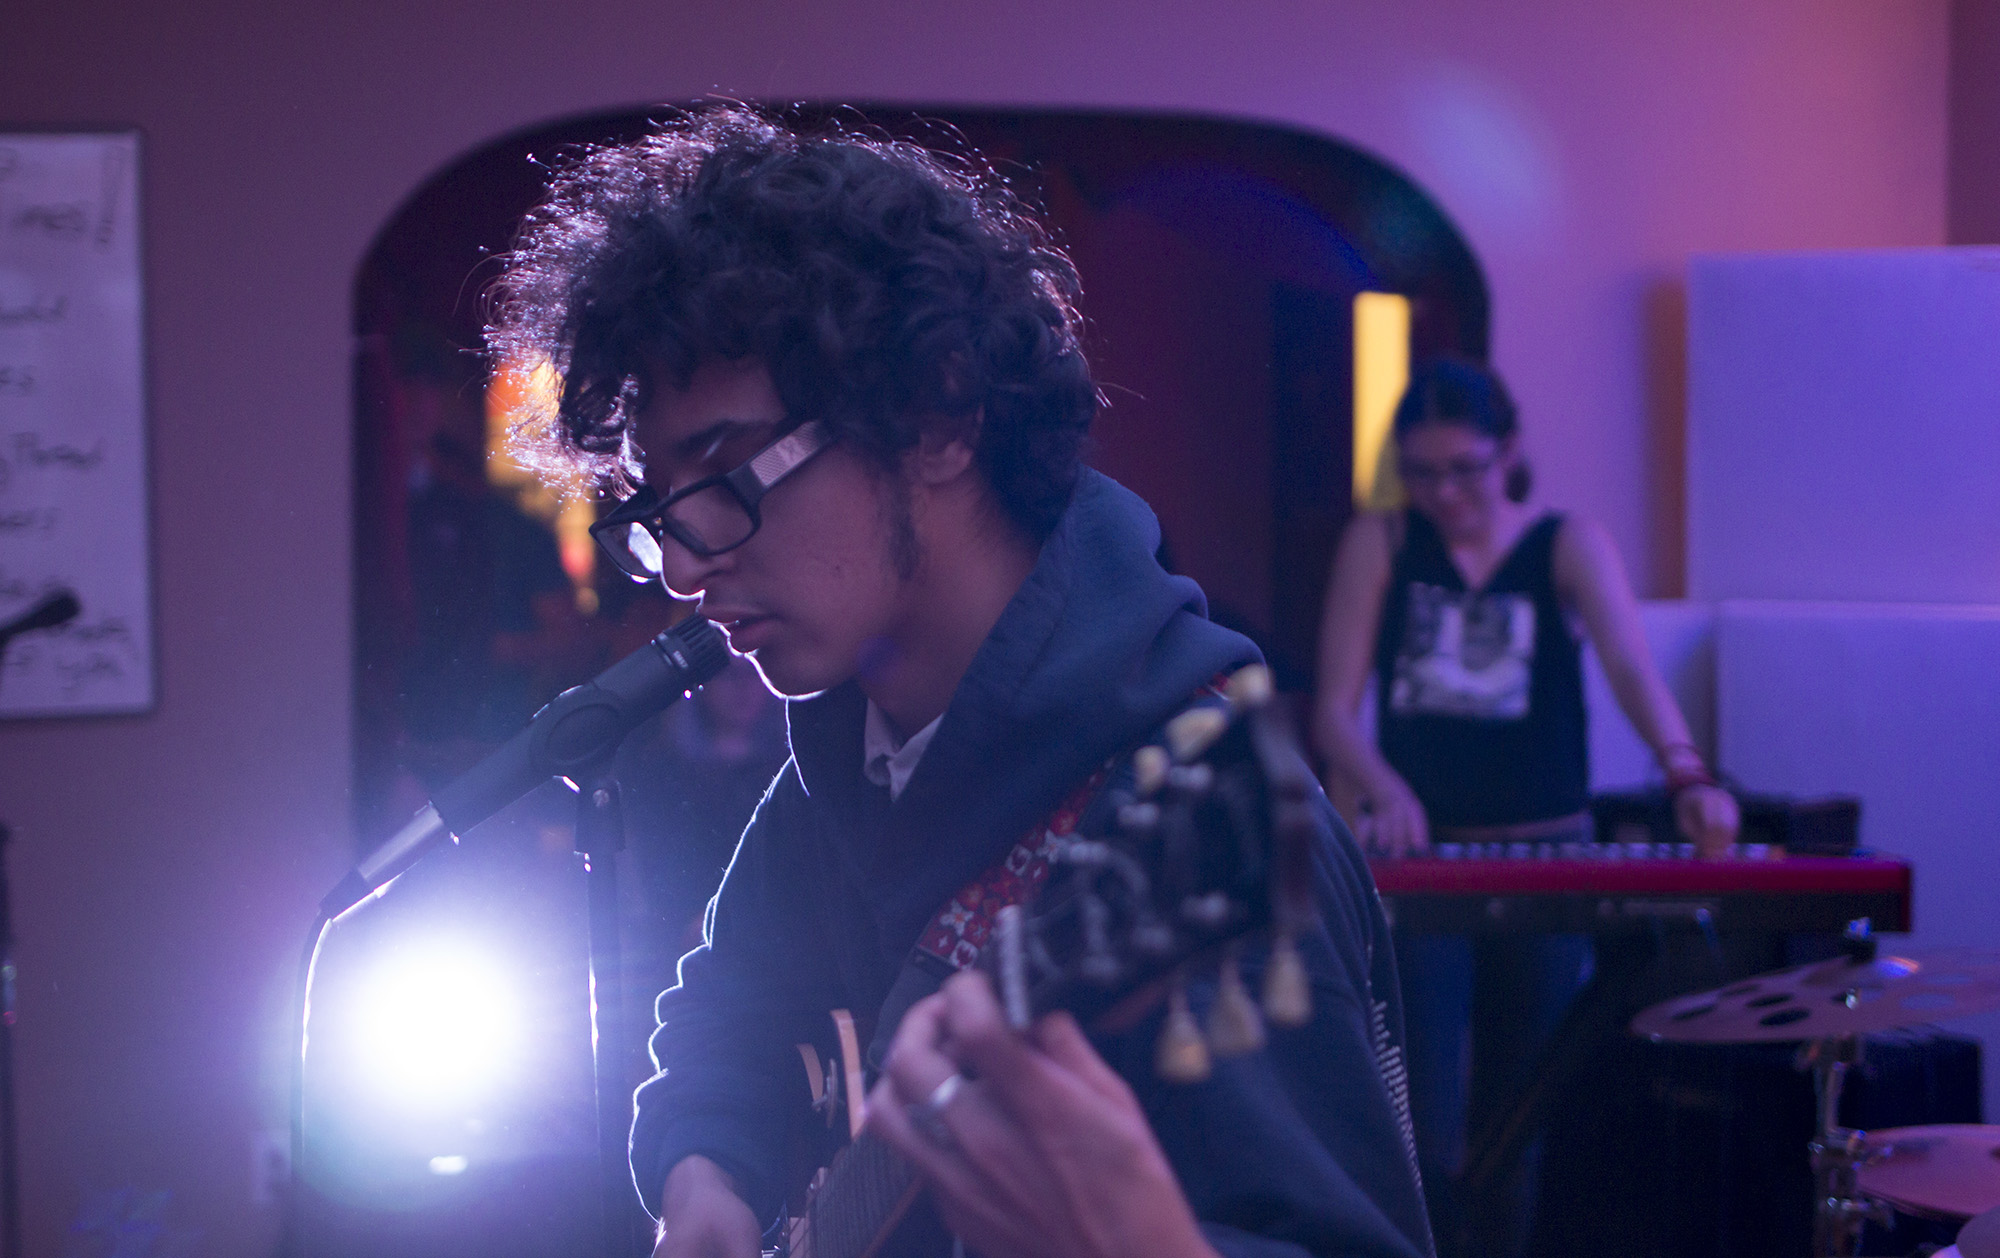 Pierce College students connect through music band show in Granada Hills